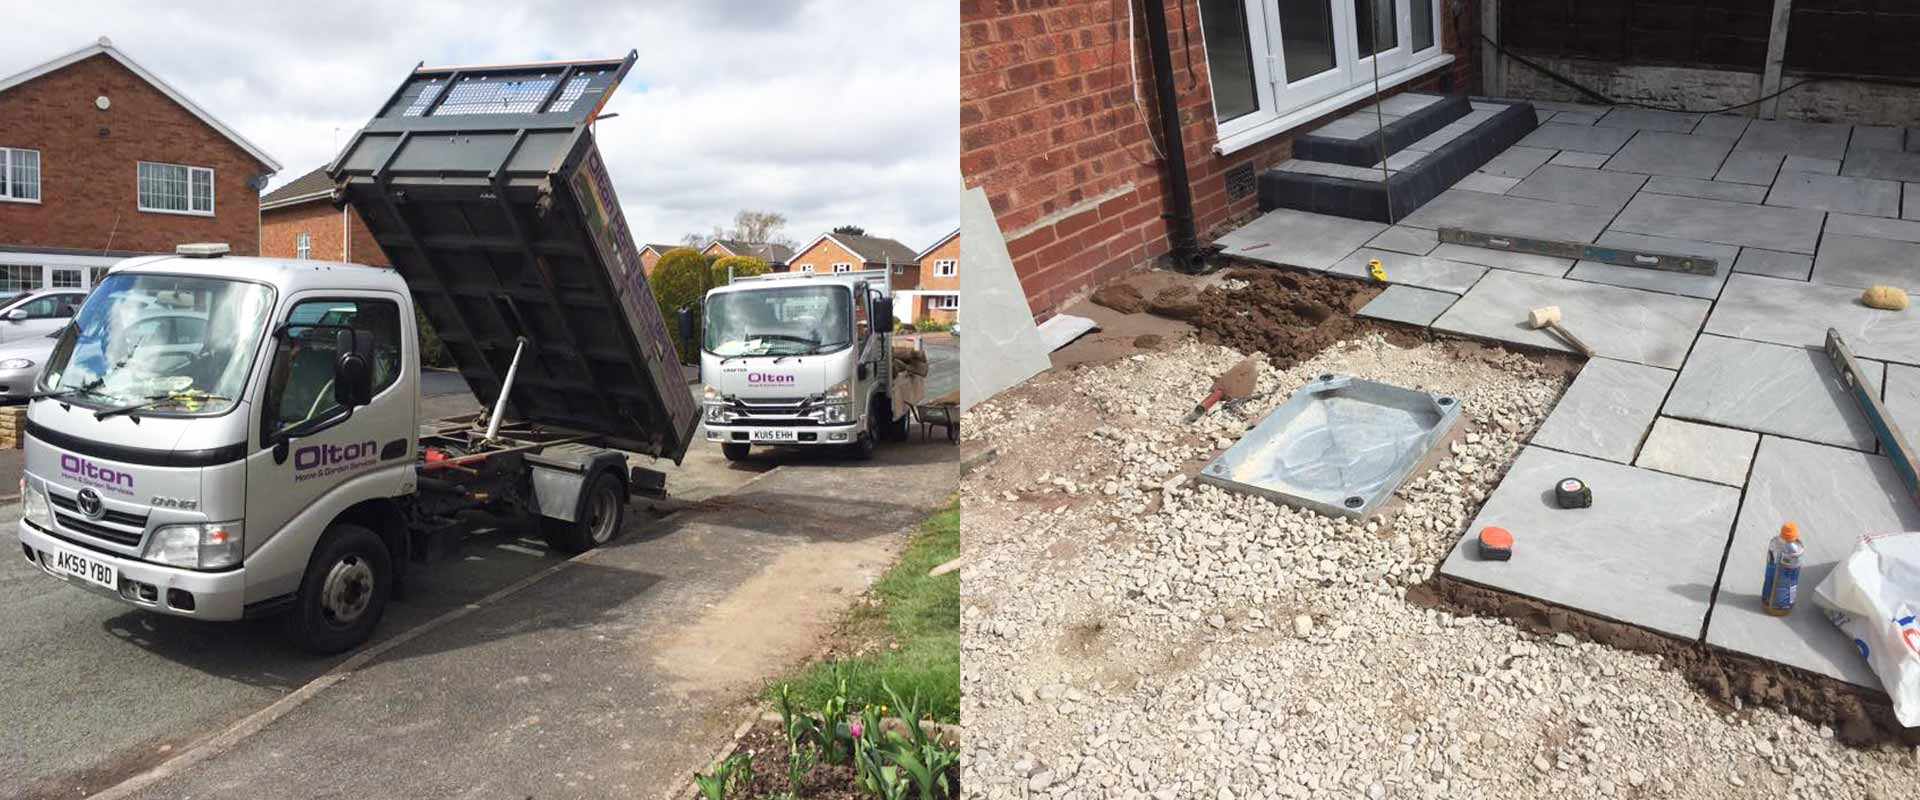 Olton Home & Garden Services Solihull